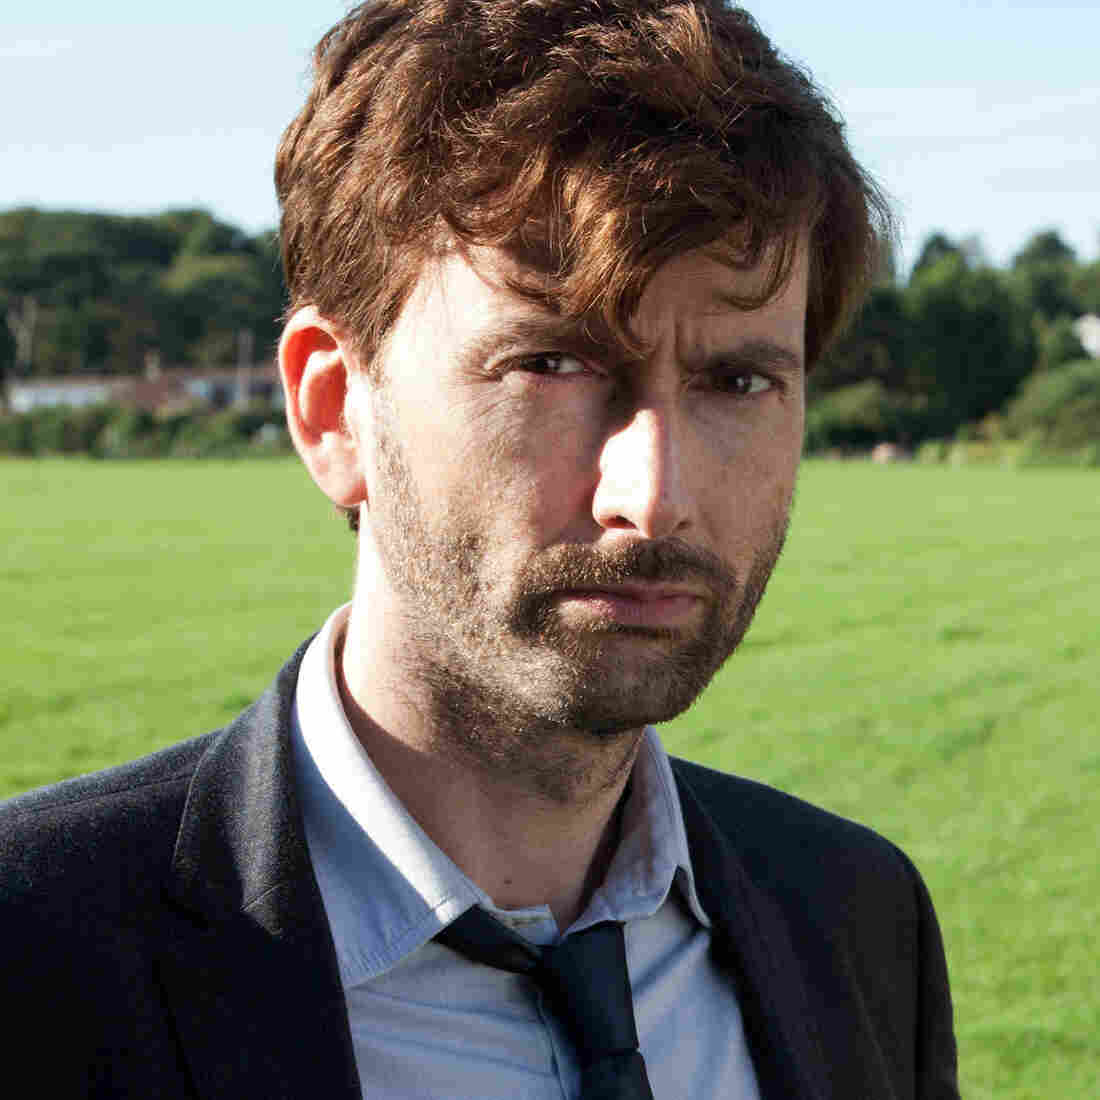 Murder, Secrets And Lies By The Seaside In 'Broadchurch'